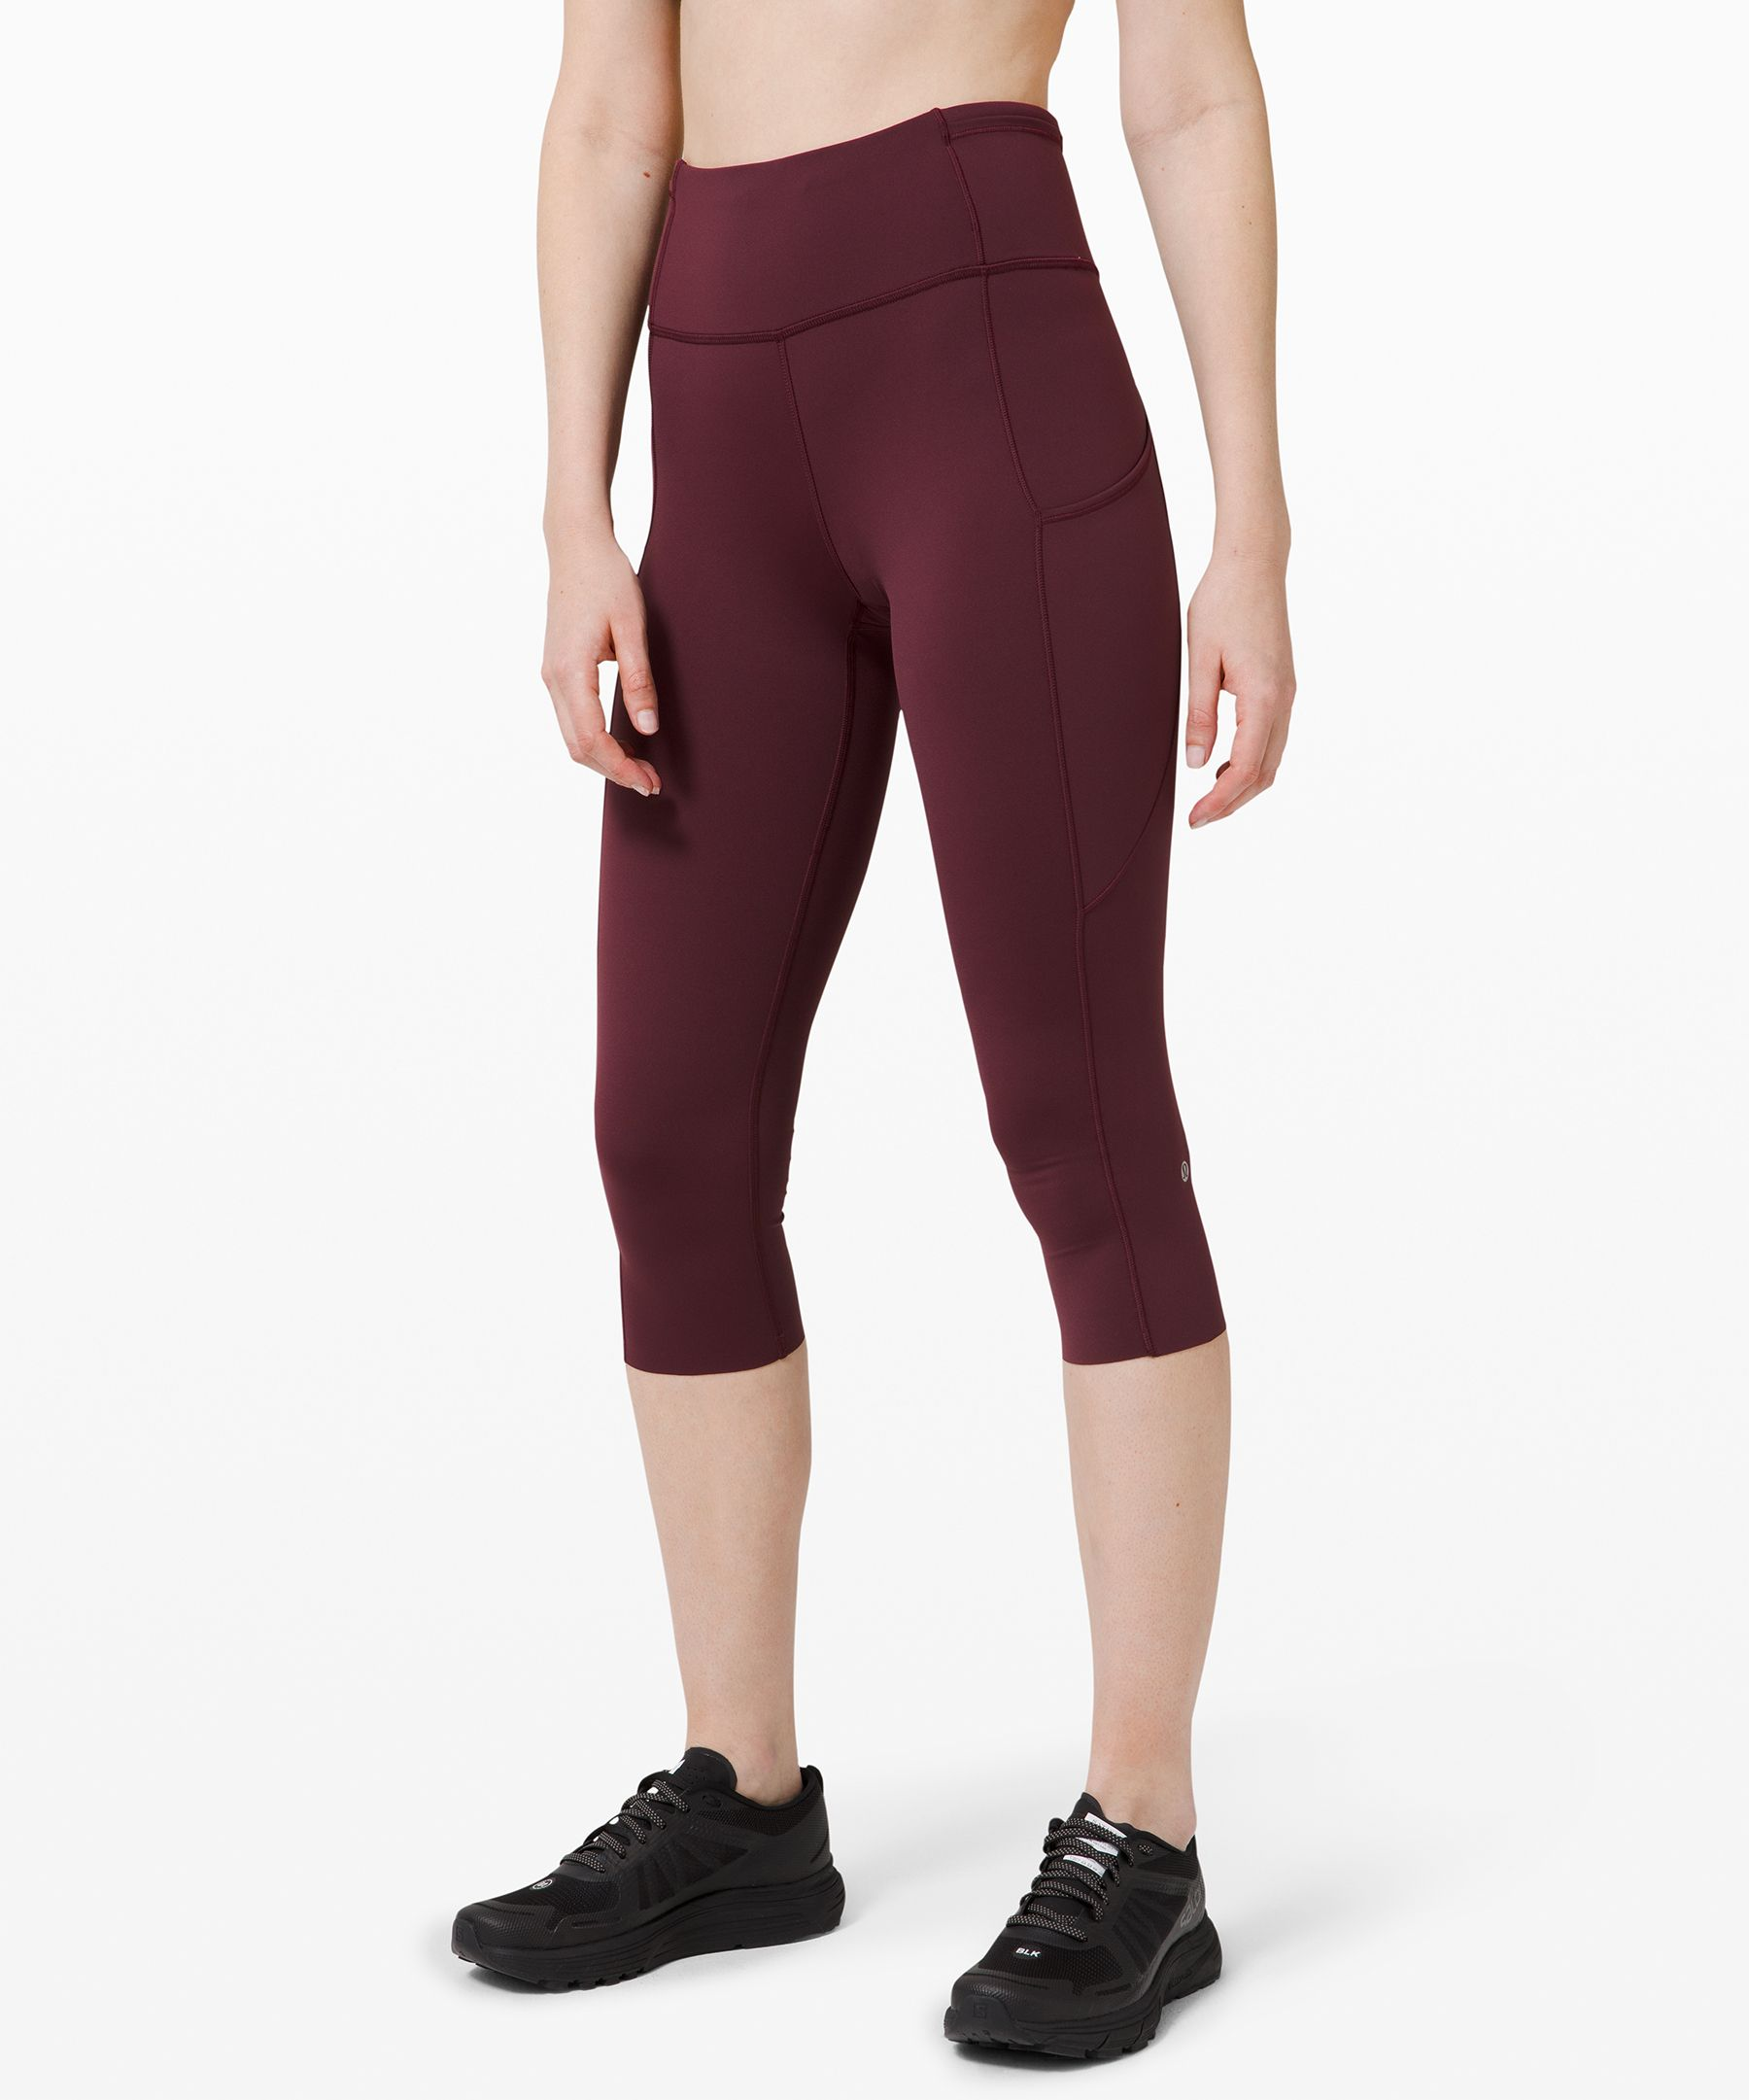 Feel as fast as you do free in  these barely-there feeling  crops that won\\\'t distract you  from picking up the pace.  Nulux™ fabric offers near  weightless coverage for a  seriously smooth stride.